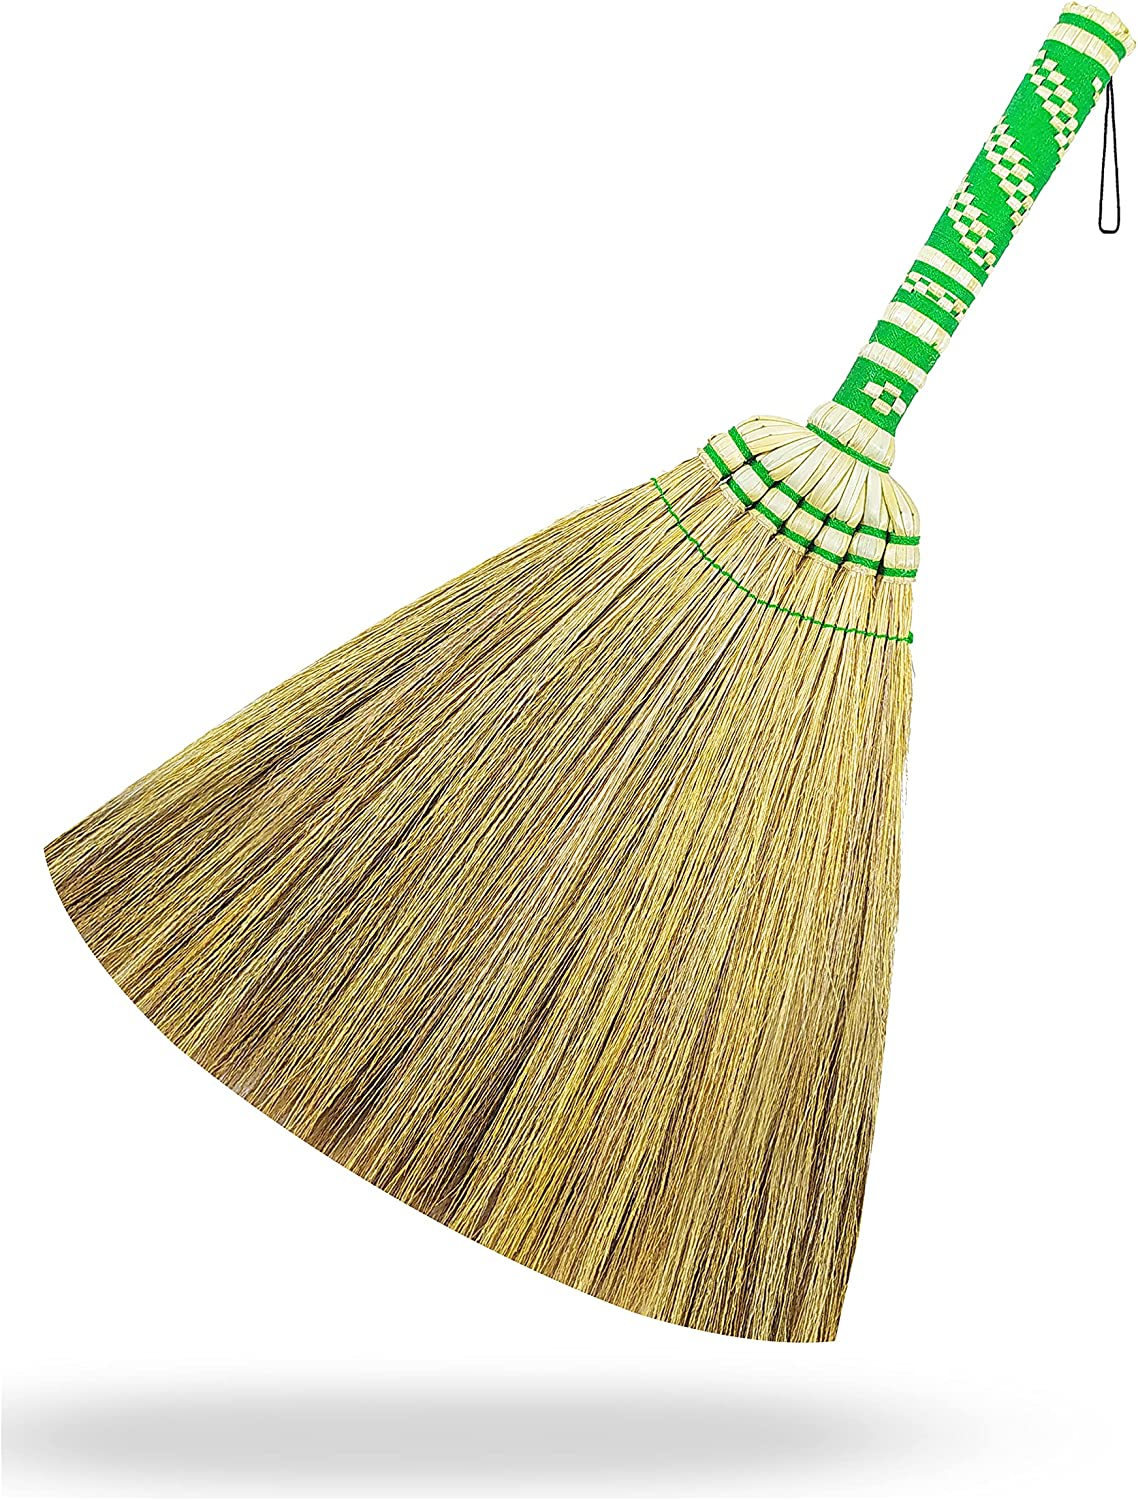 All overseas stores are sold Brush Set L17.5 Inch Natural Grass with Bamboo Handle Broom Mini